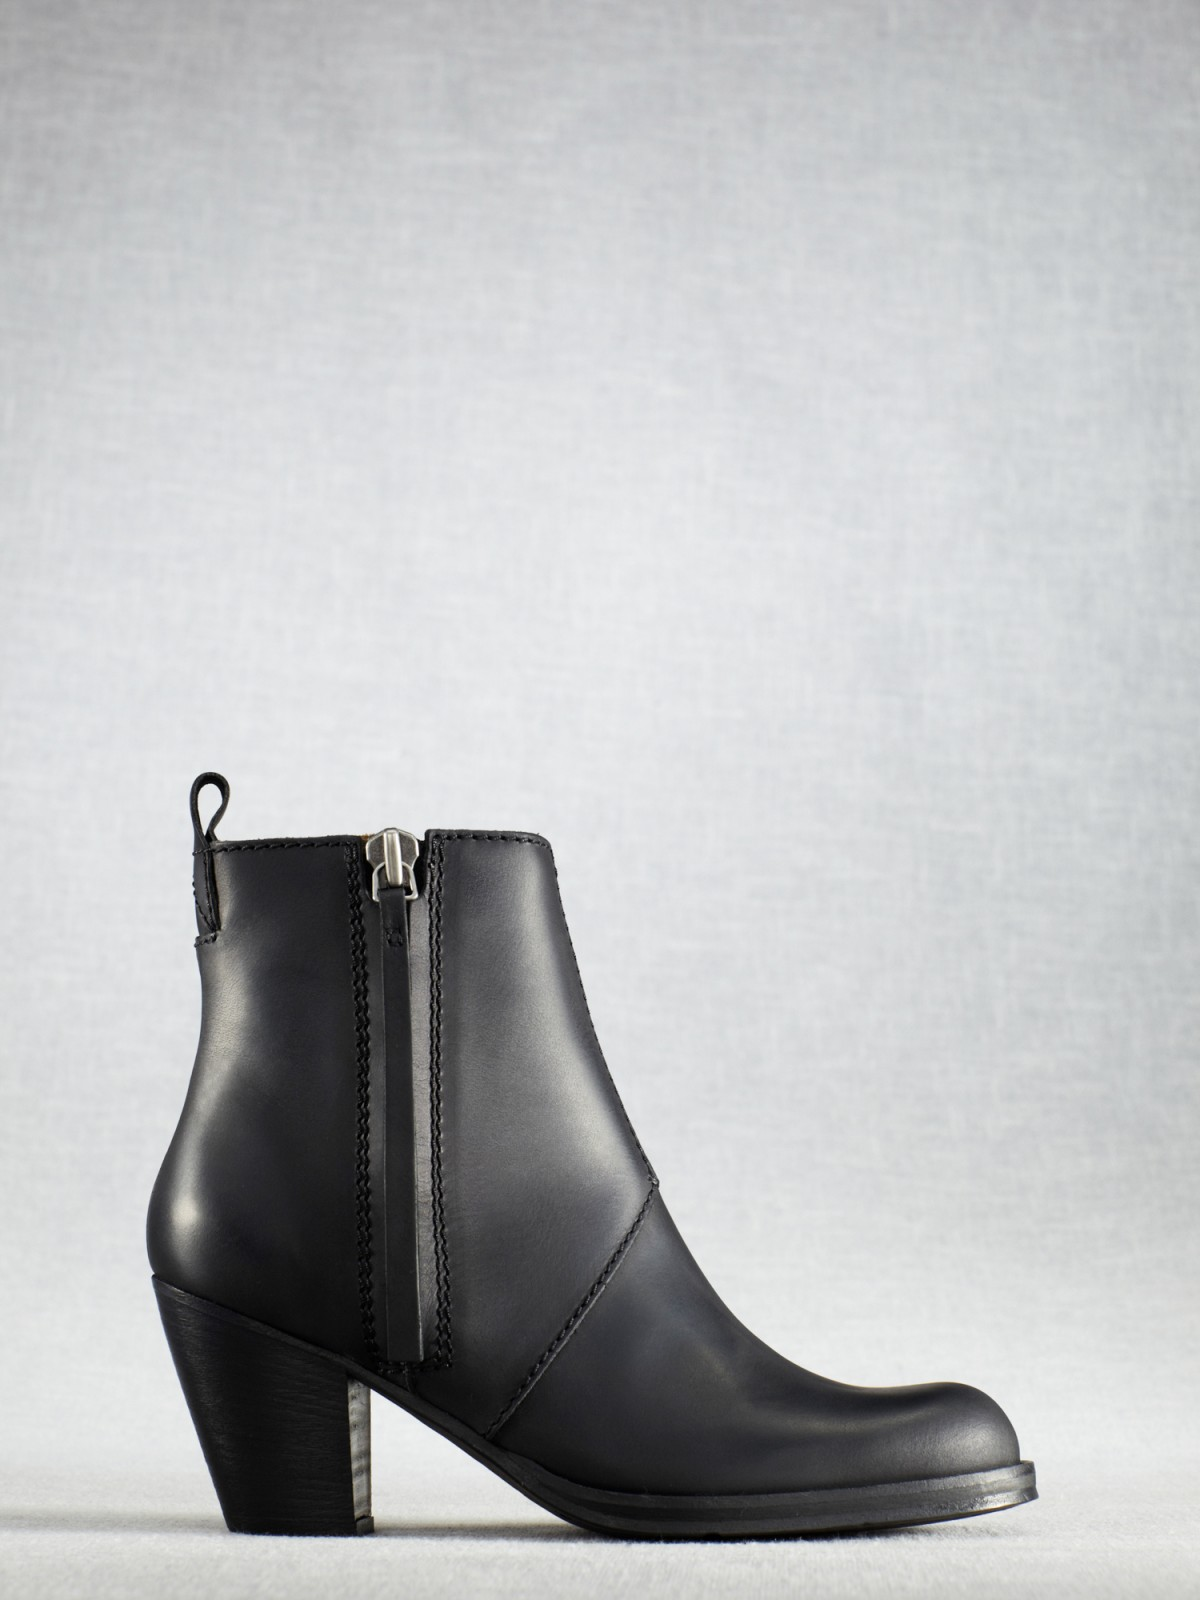 laws of general economy: [SOLD] Acne Pistol Short Boot, size 39/9